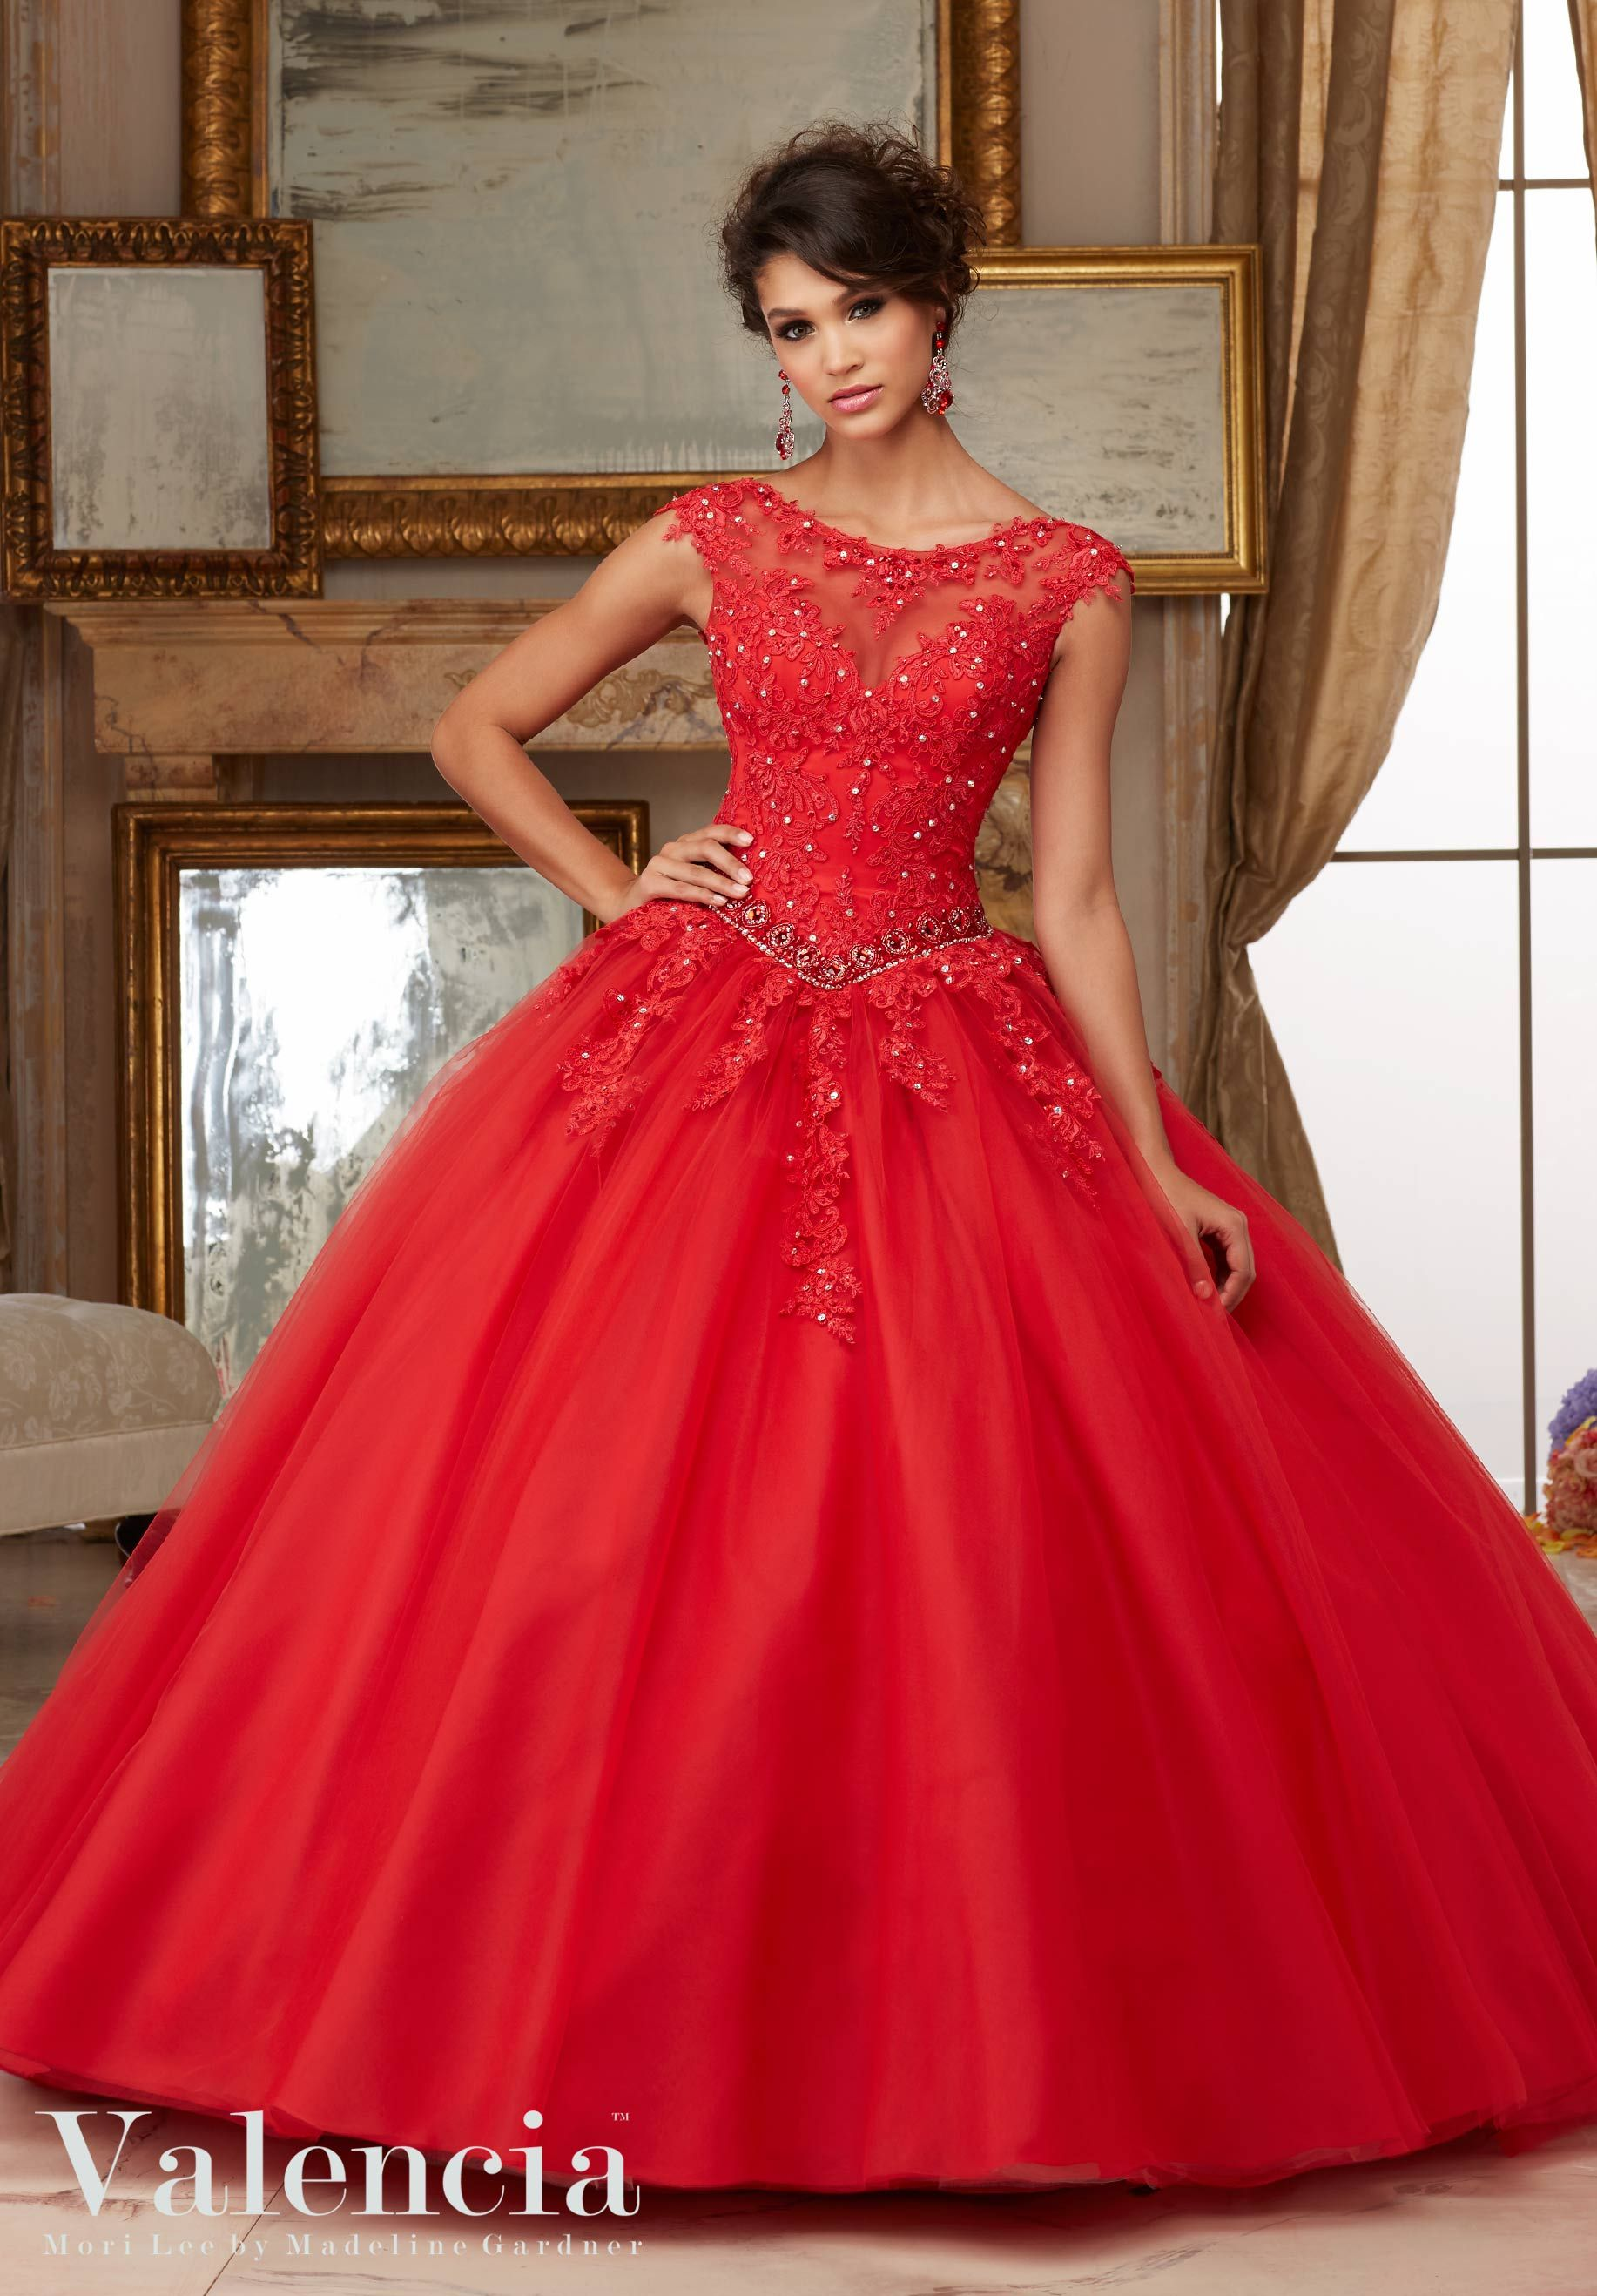 c0420ba9719 Red Quinceanera Dress by Valencia Morilee designed by Madeline Gardner.  Matching Stole. Princess Ball Gown with Illusion Neckline